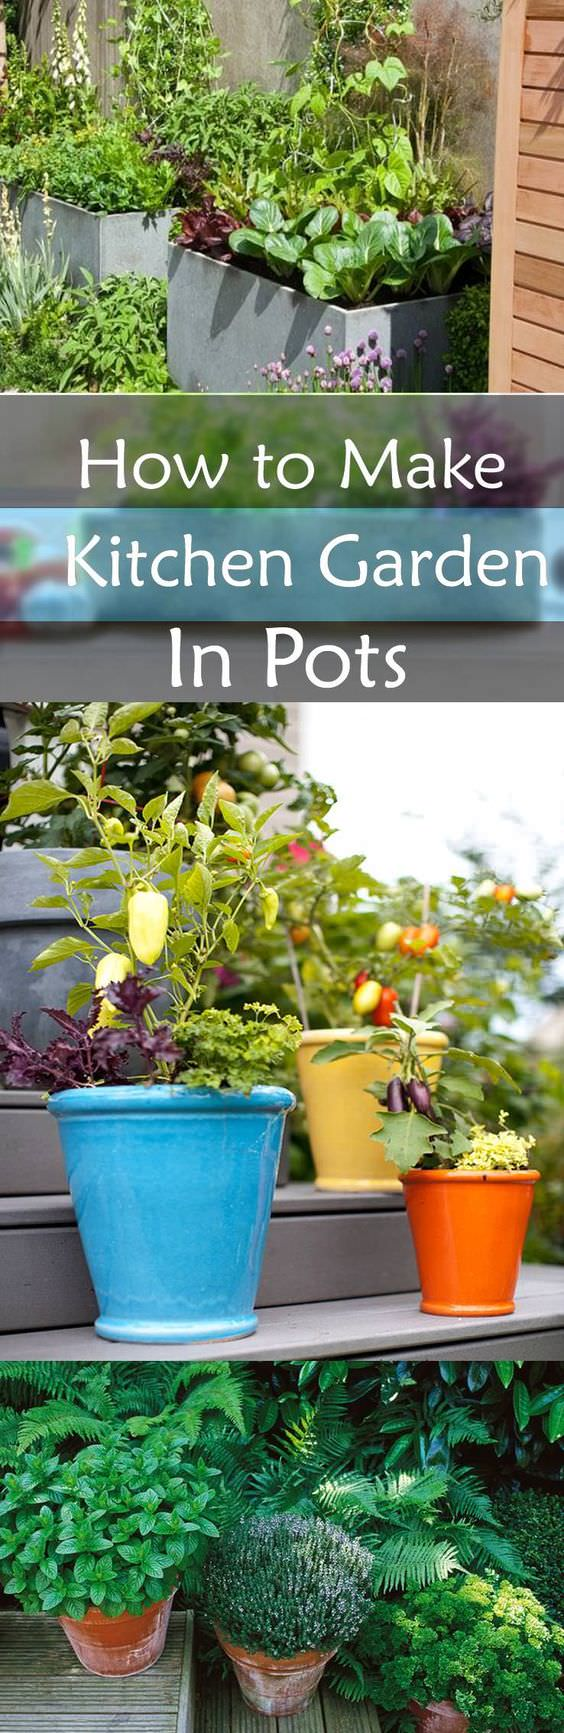 Garden To Kitchen How To Make Kitchen Garden In Pots Container Kitchen Garden